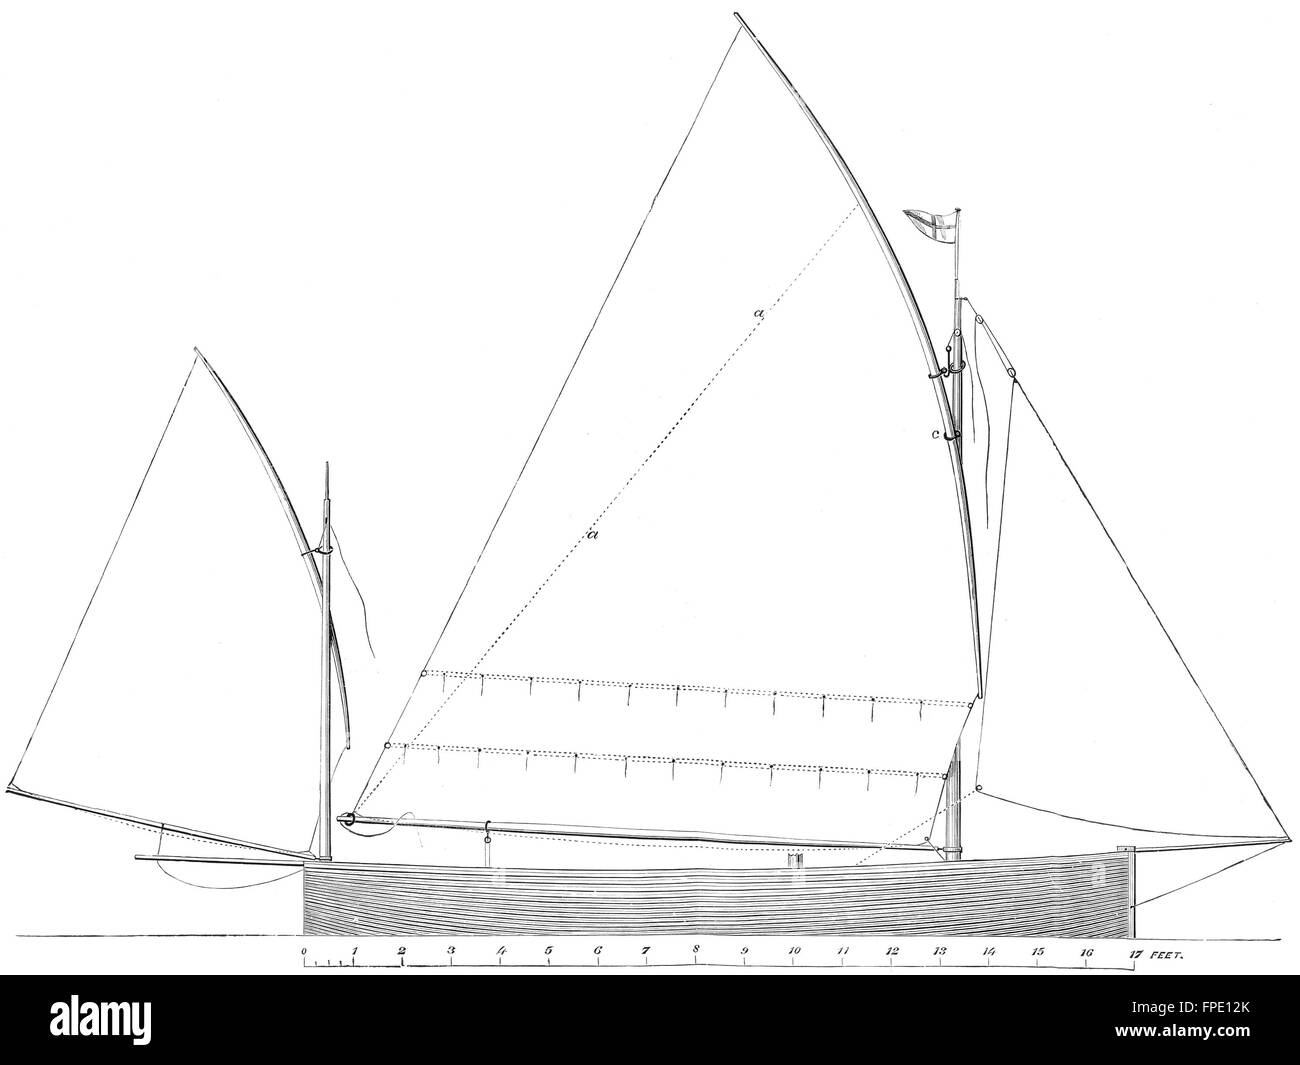 hight resolution of yachts standing lug rig sail plan for 17ft boat antique print 1891